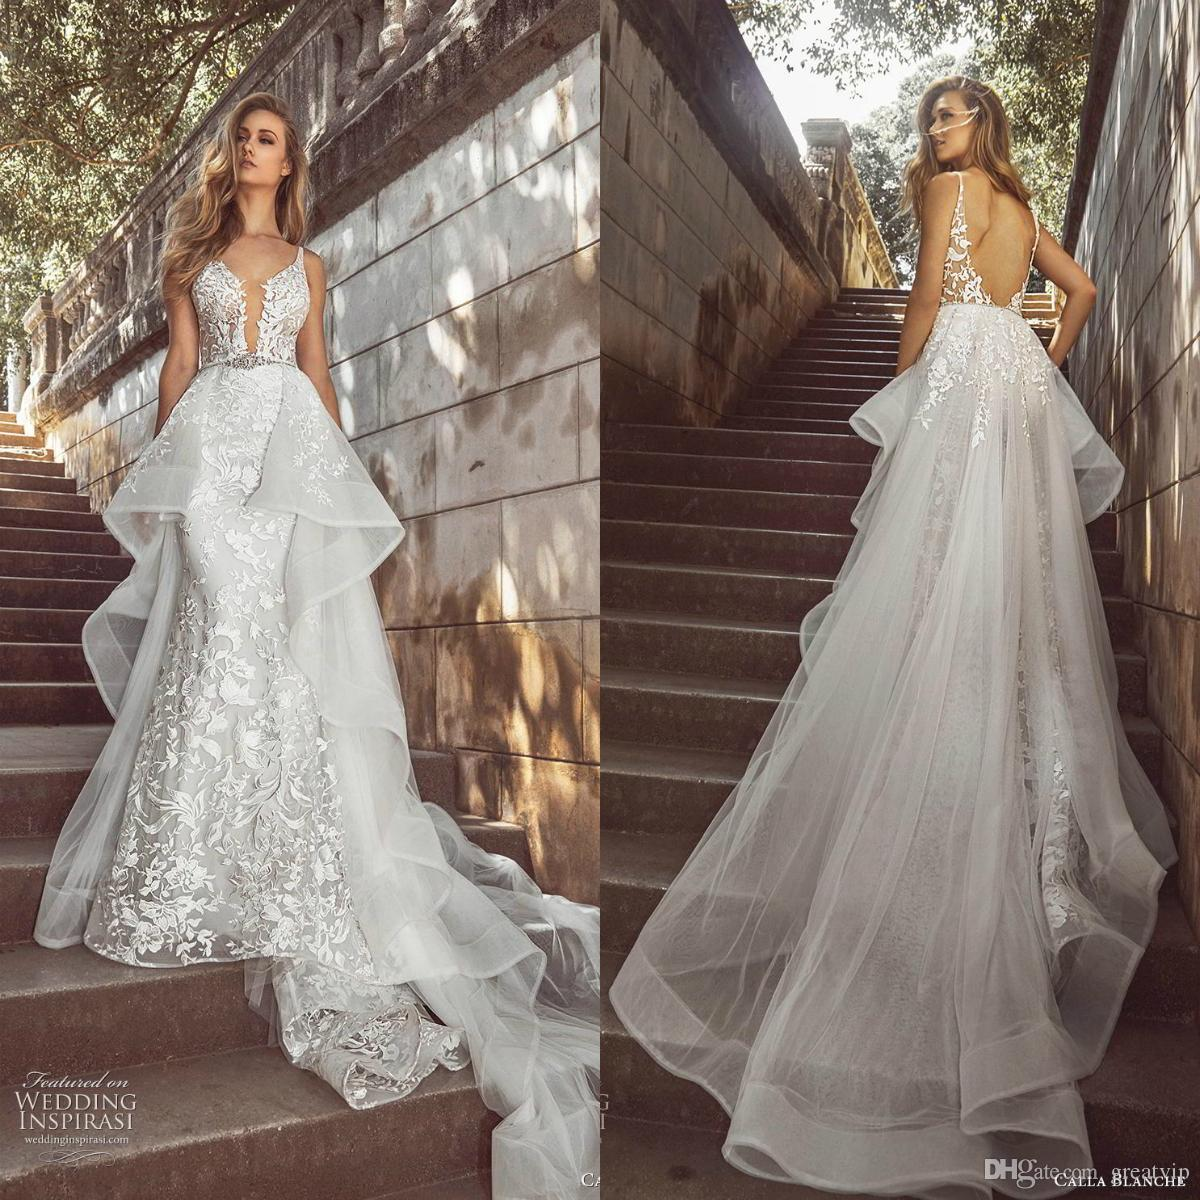 6655ebec5ae1 Calla Blanche 2019 Mermaid Wedding Dresses Lace Beads Backless Detachable  Ruffle Bridal Gowns Plus Size Vestidos De Noiva Red Wedding Dresses Sexy  Wedding ...